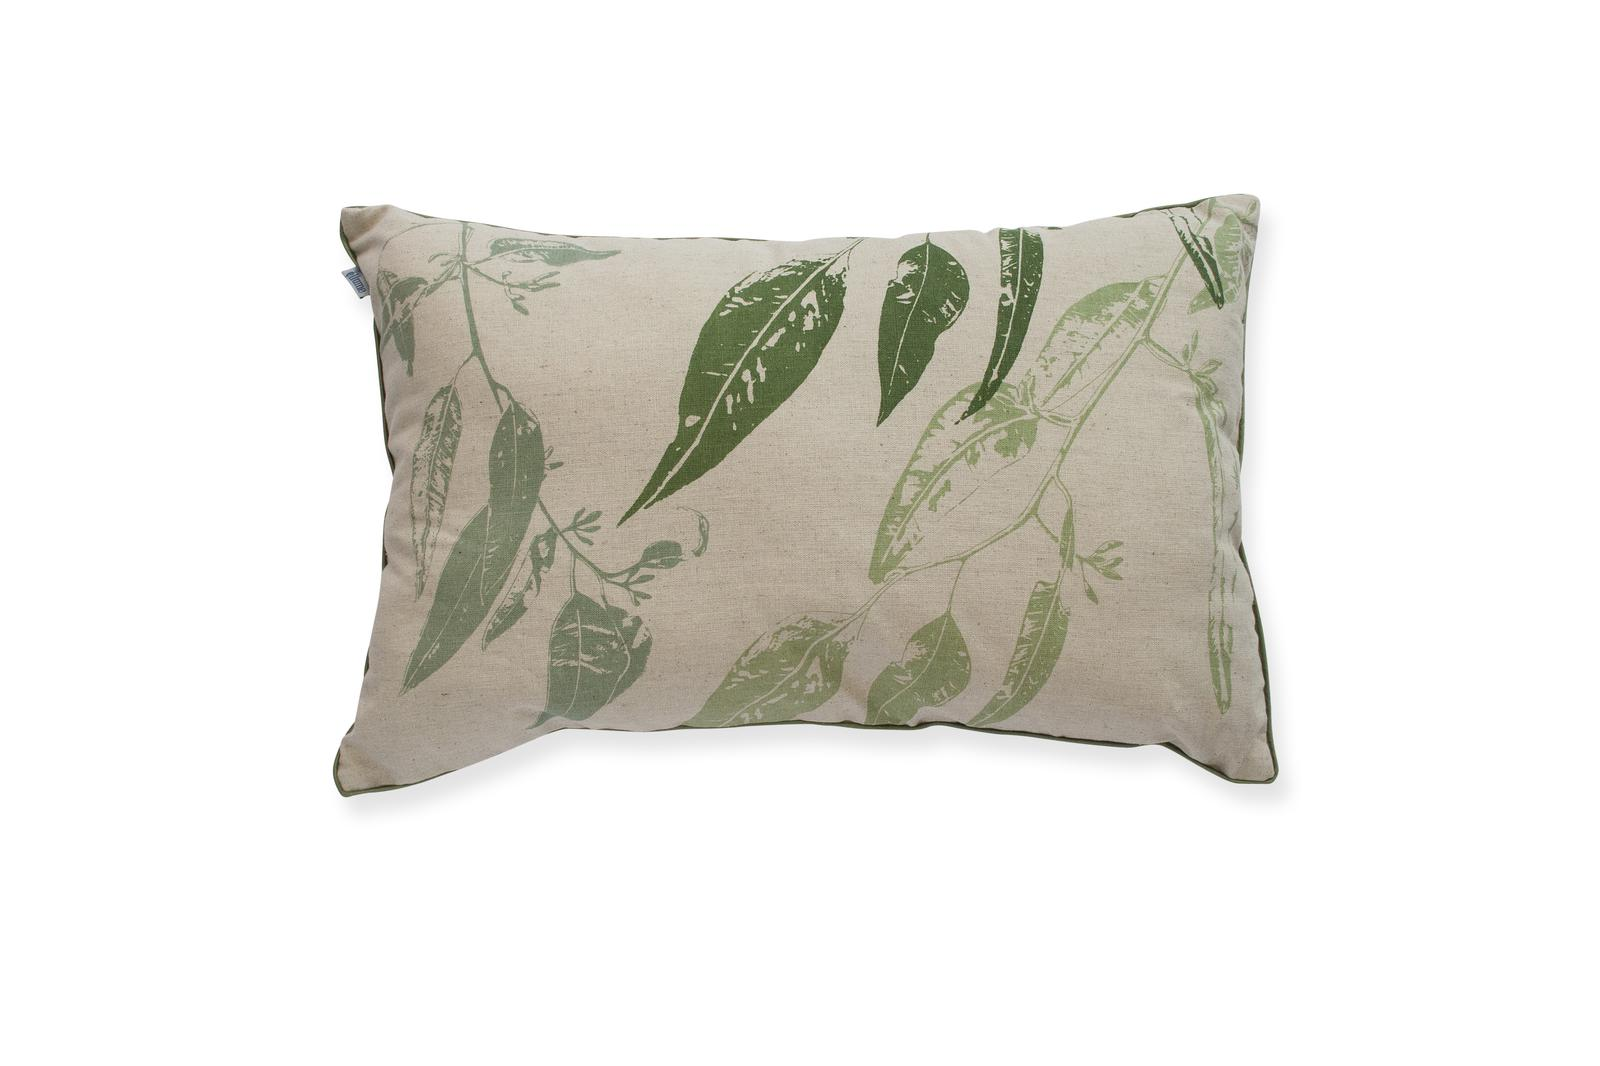 50x30cm Cushion 'Jarrah Leaf' in greens with green piping